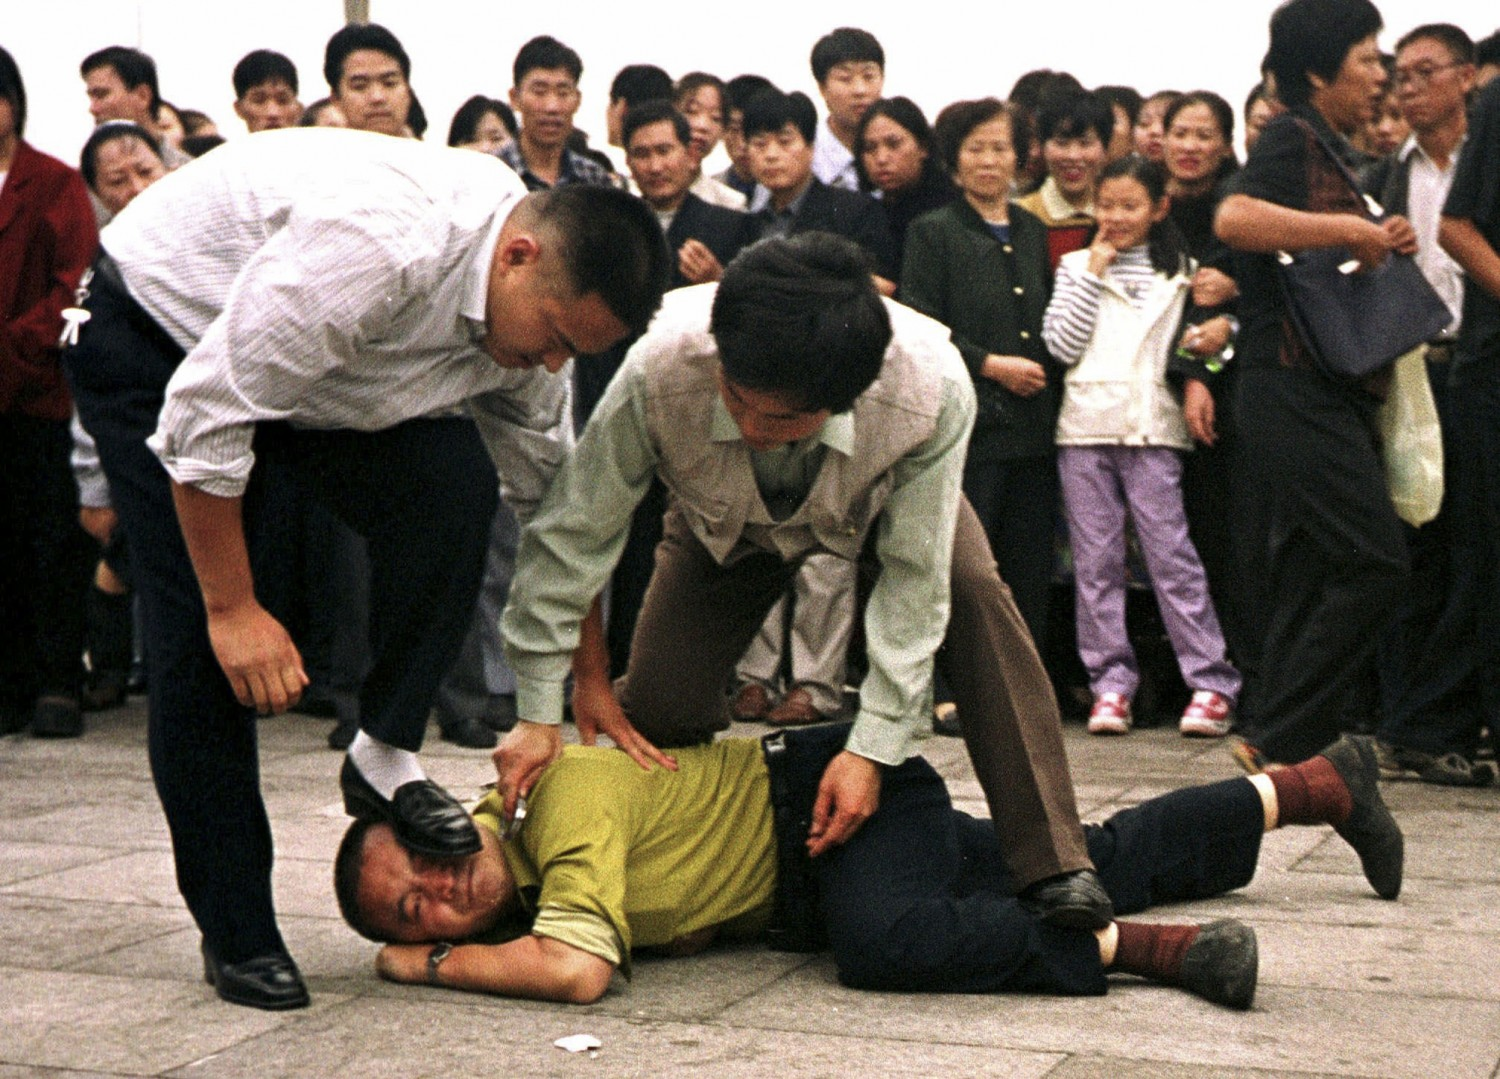 Police detain a Falun Gong practitioner who was protesting in Tiananmen Square as a crowd watches in Beijing on Oct. 1, 2000. (AP Photo/Chien-min Chung, File)